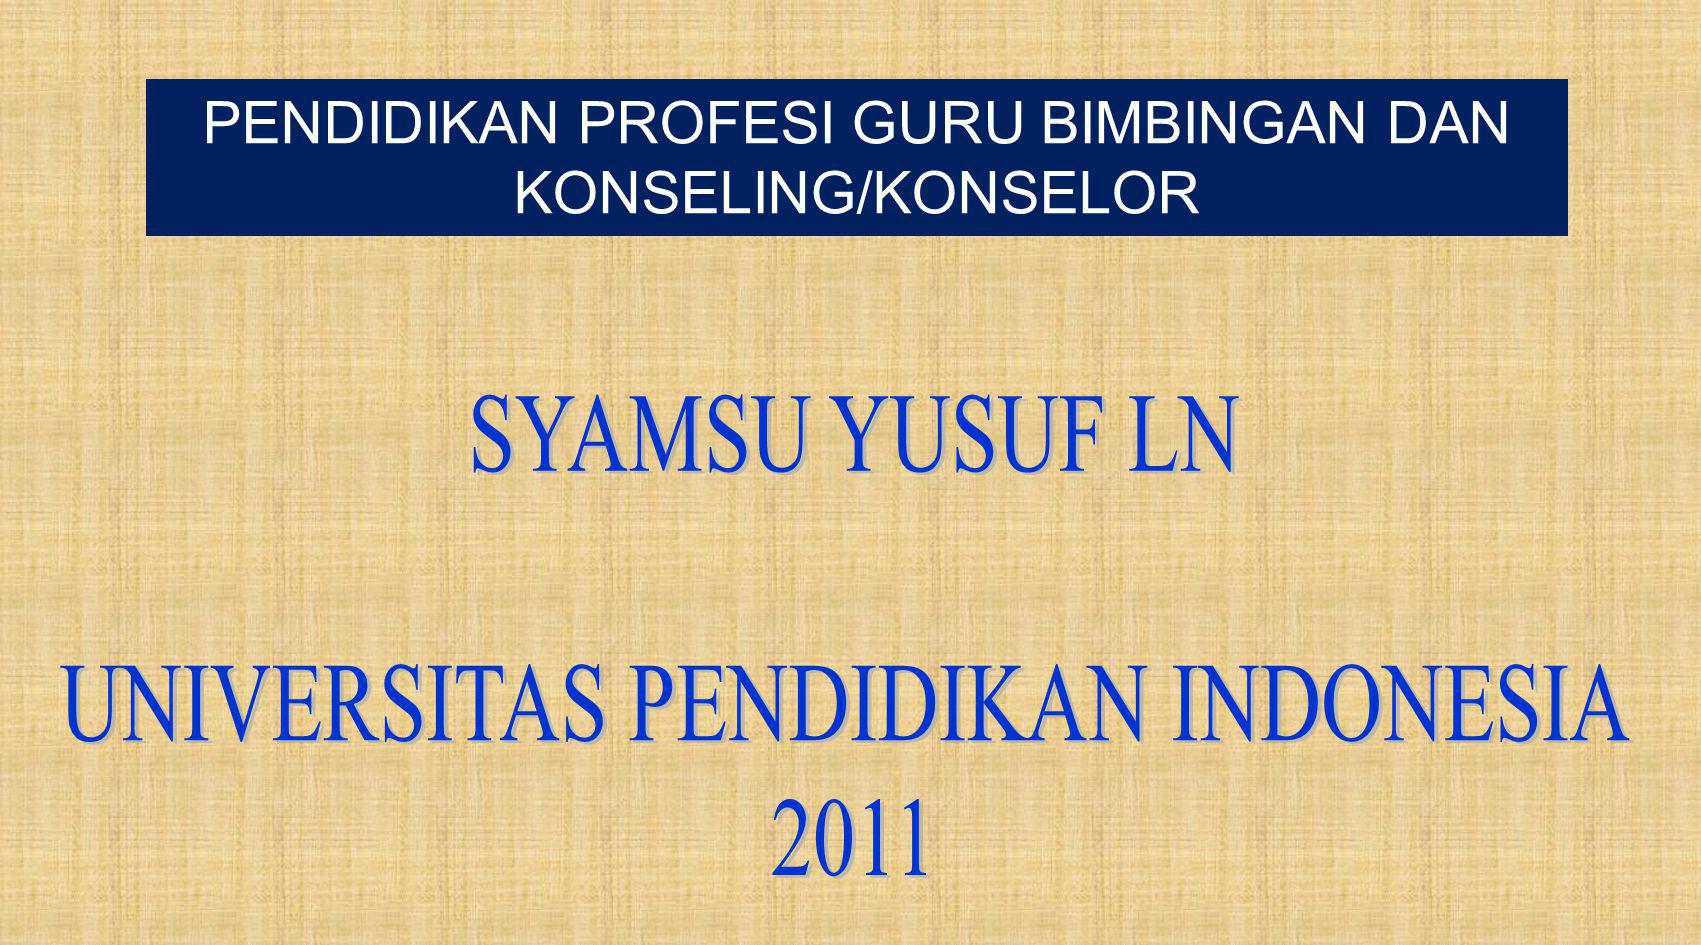 UNIVERSITAS PENDIDIKAN INDONESIA 2011